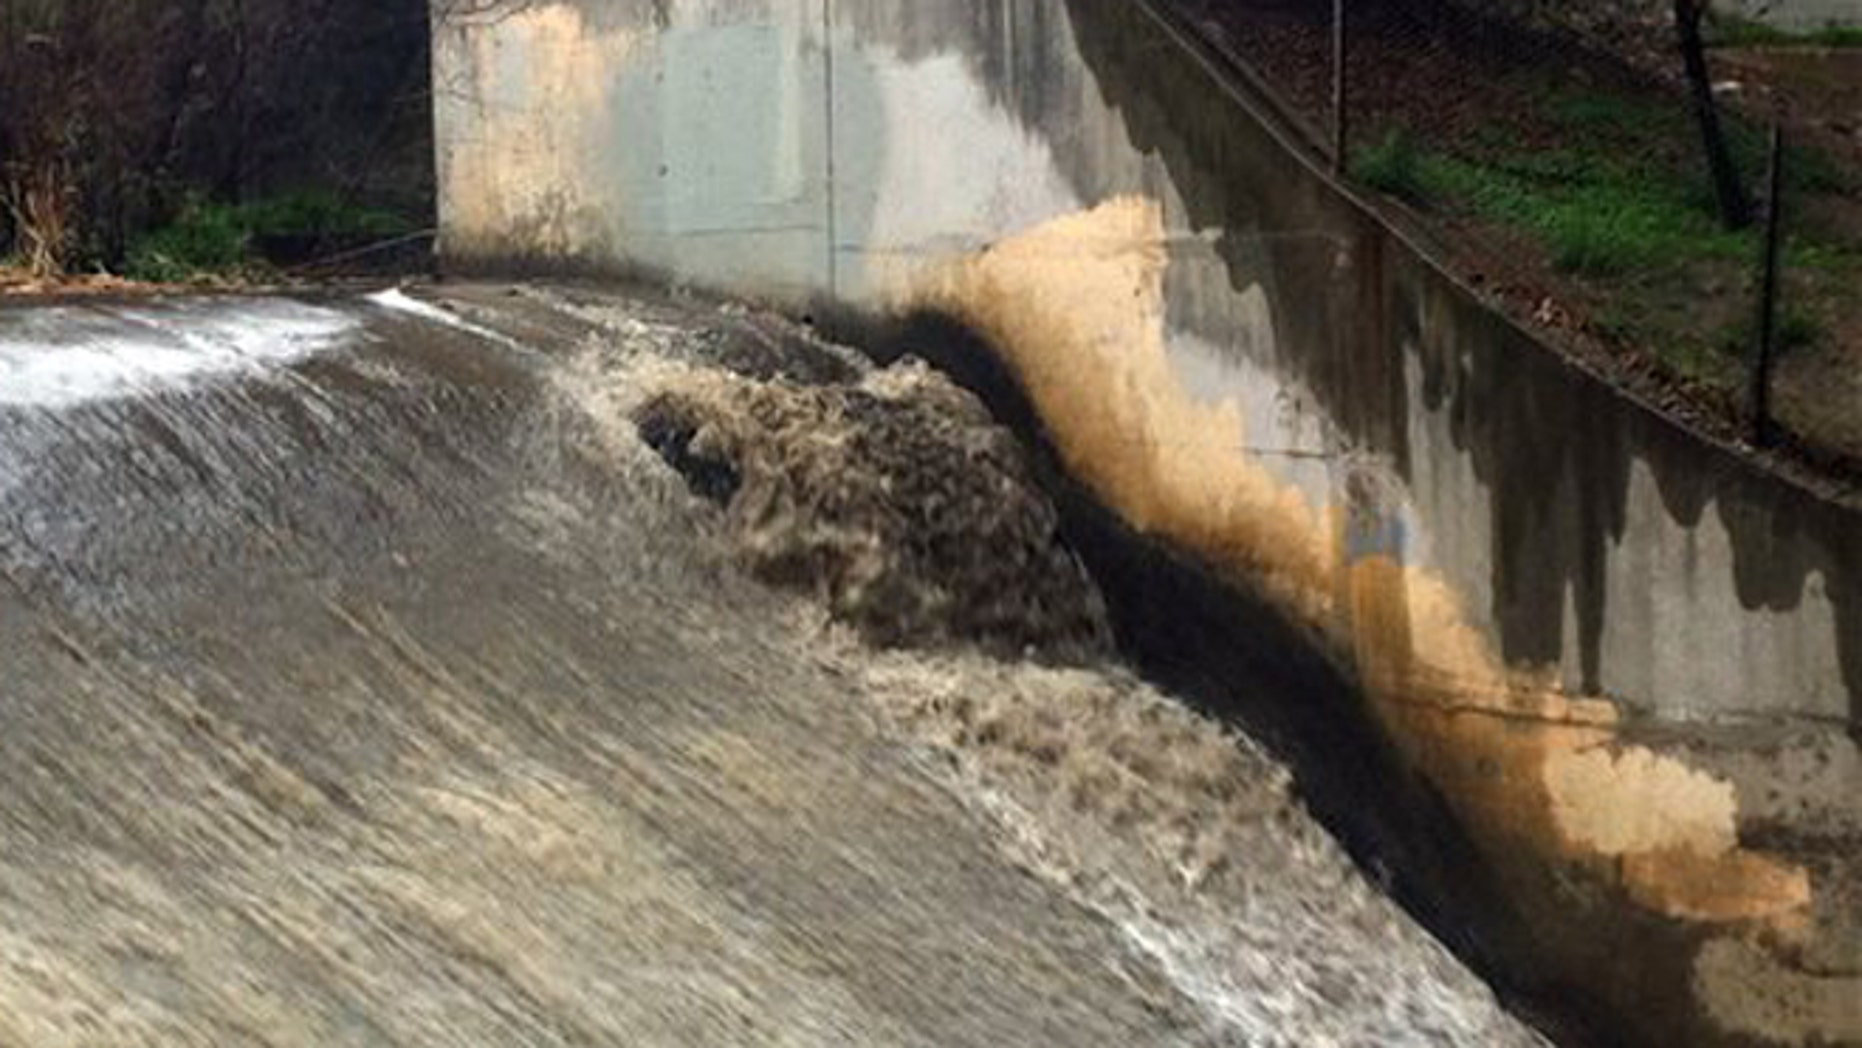 Runoff gushes down a spillway in the Arroyo Seco, which translates to 'dry creek' or 'dry stream' in Spanish, in Pasadena, Calif., as rain drenches the region Sunday, Jan. 31, 2016.